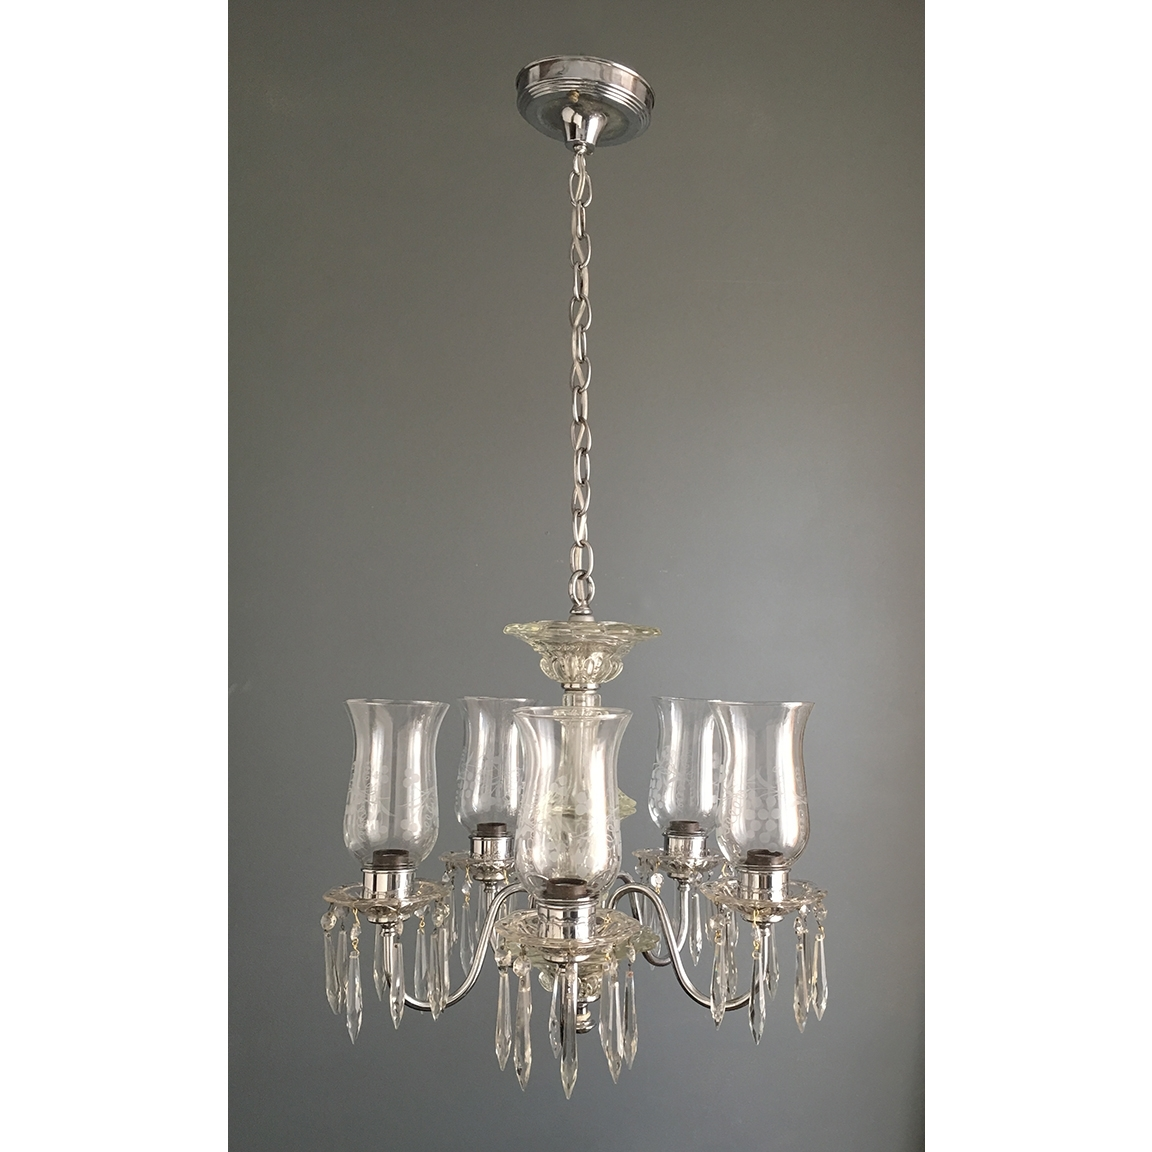 Small Glass Chandeliers Inside Preferred Light : Chrome And Glass Chandelier Antique Ceiling Fixtures (View 10 of 20)